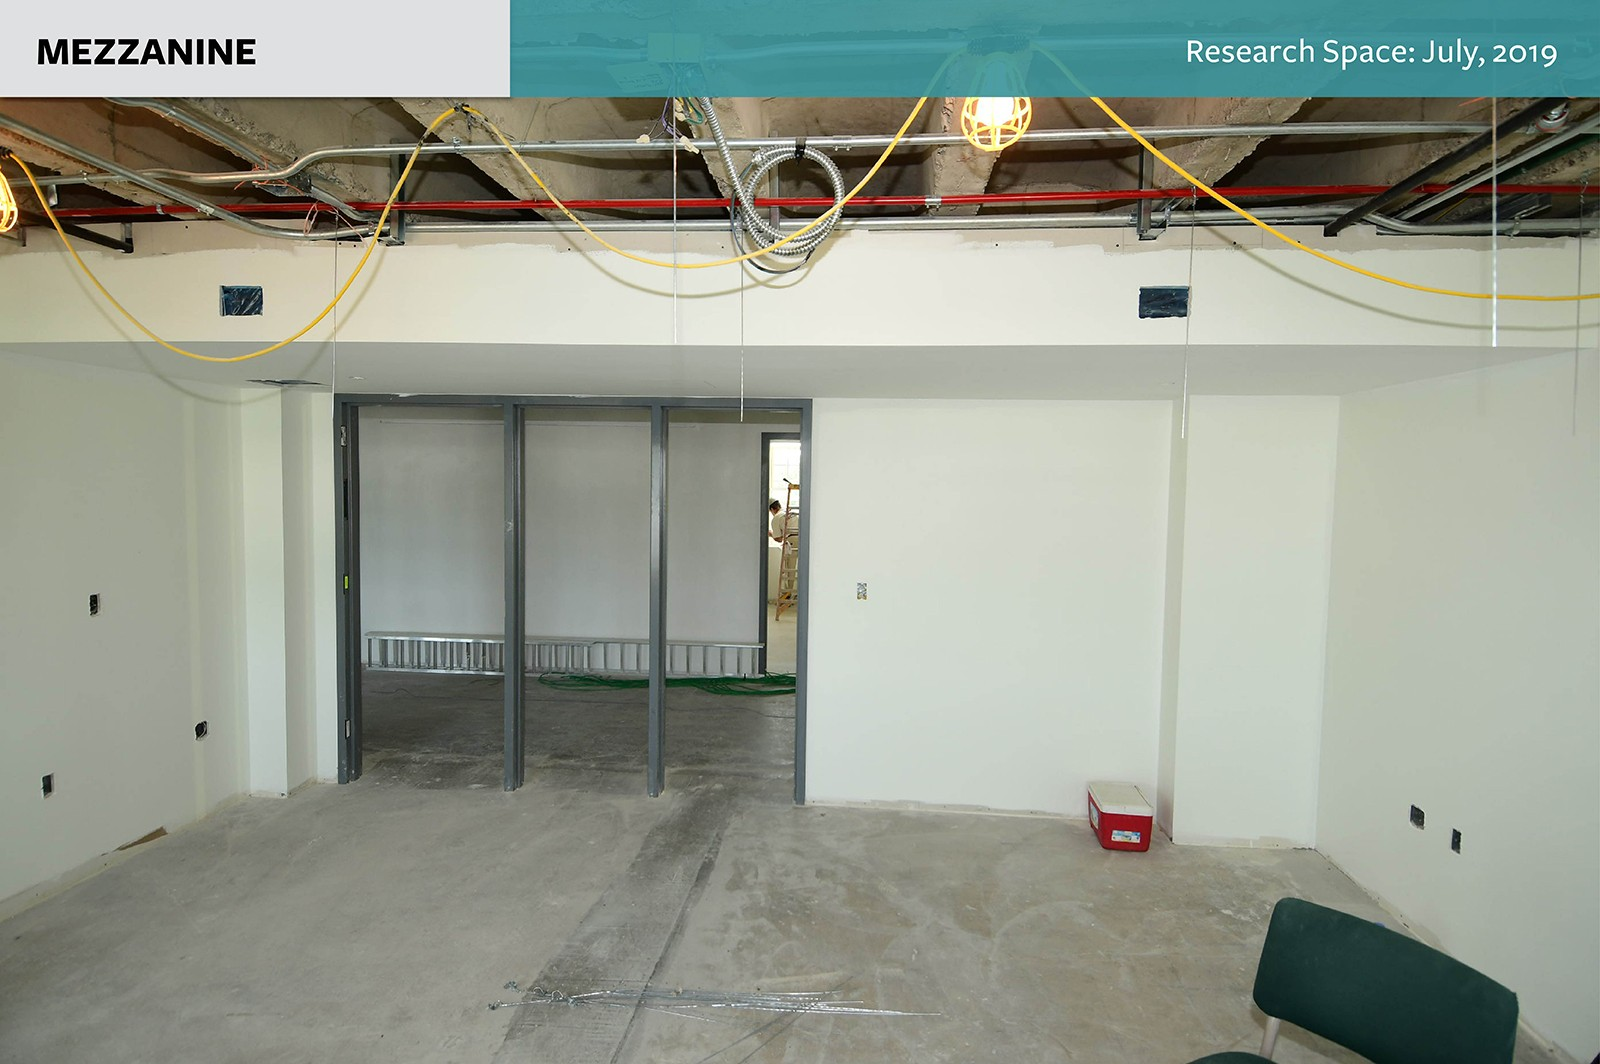 Mezzanine: Research Space as of July, 2019